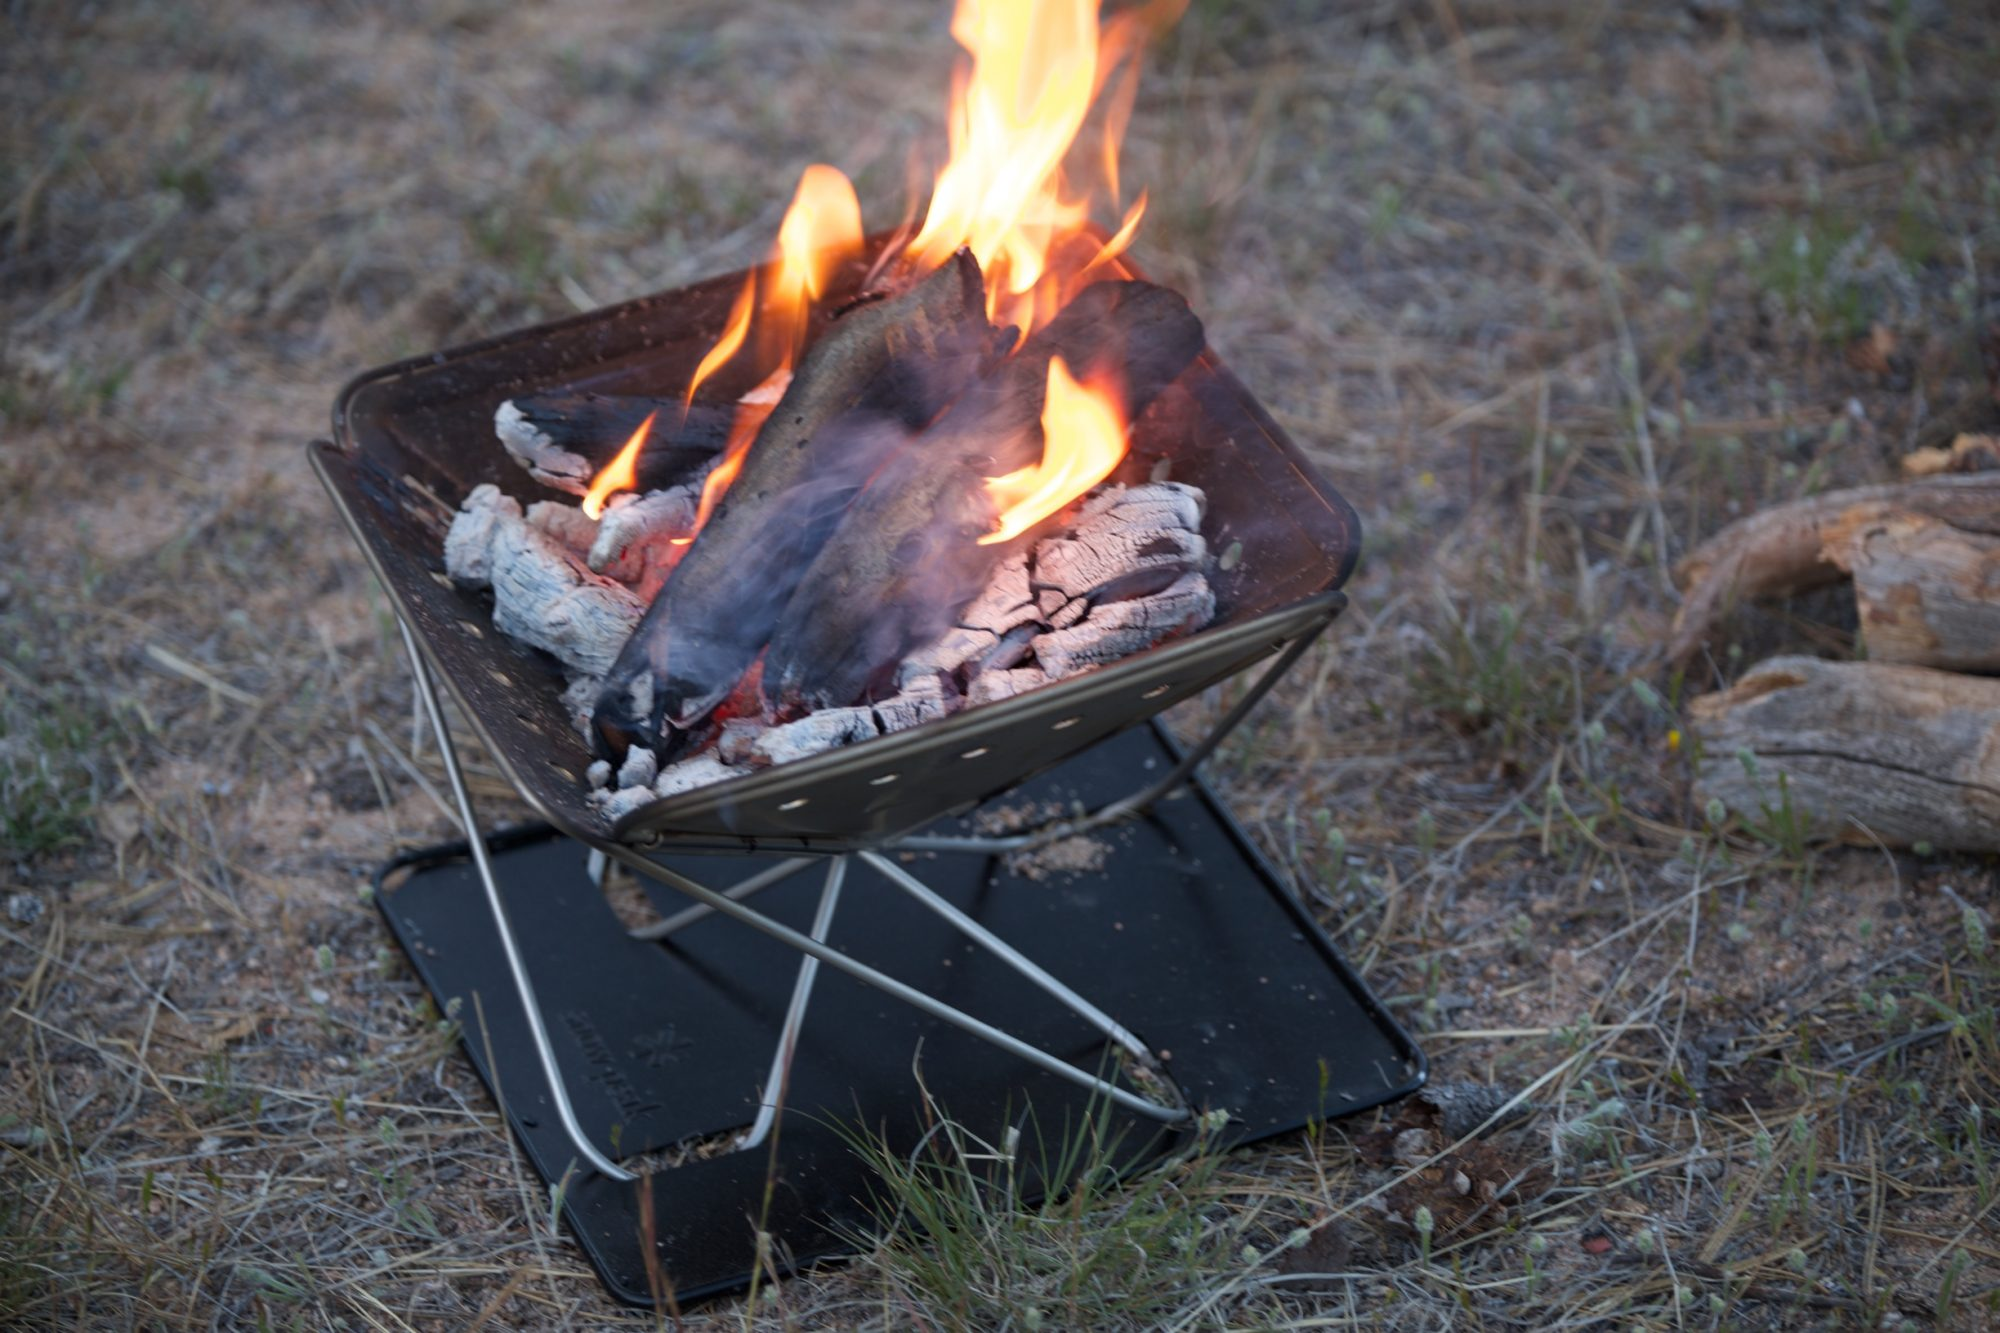 field tested snow peak pack u0026 carry fireplace small u2013 expedition